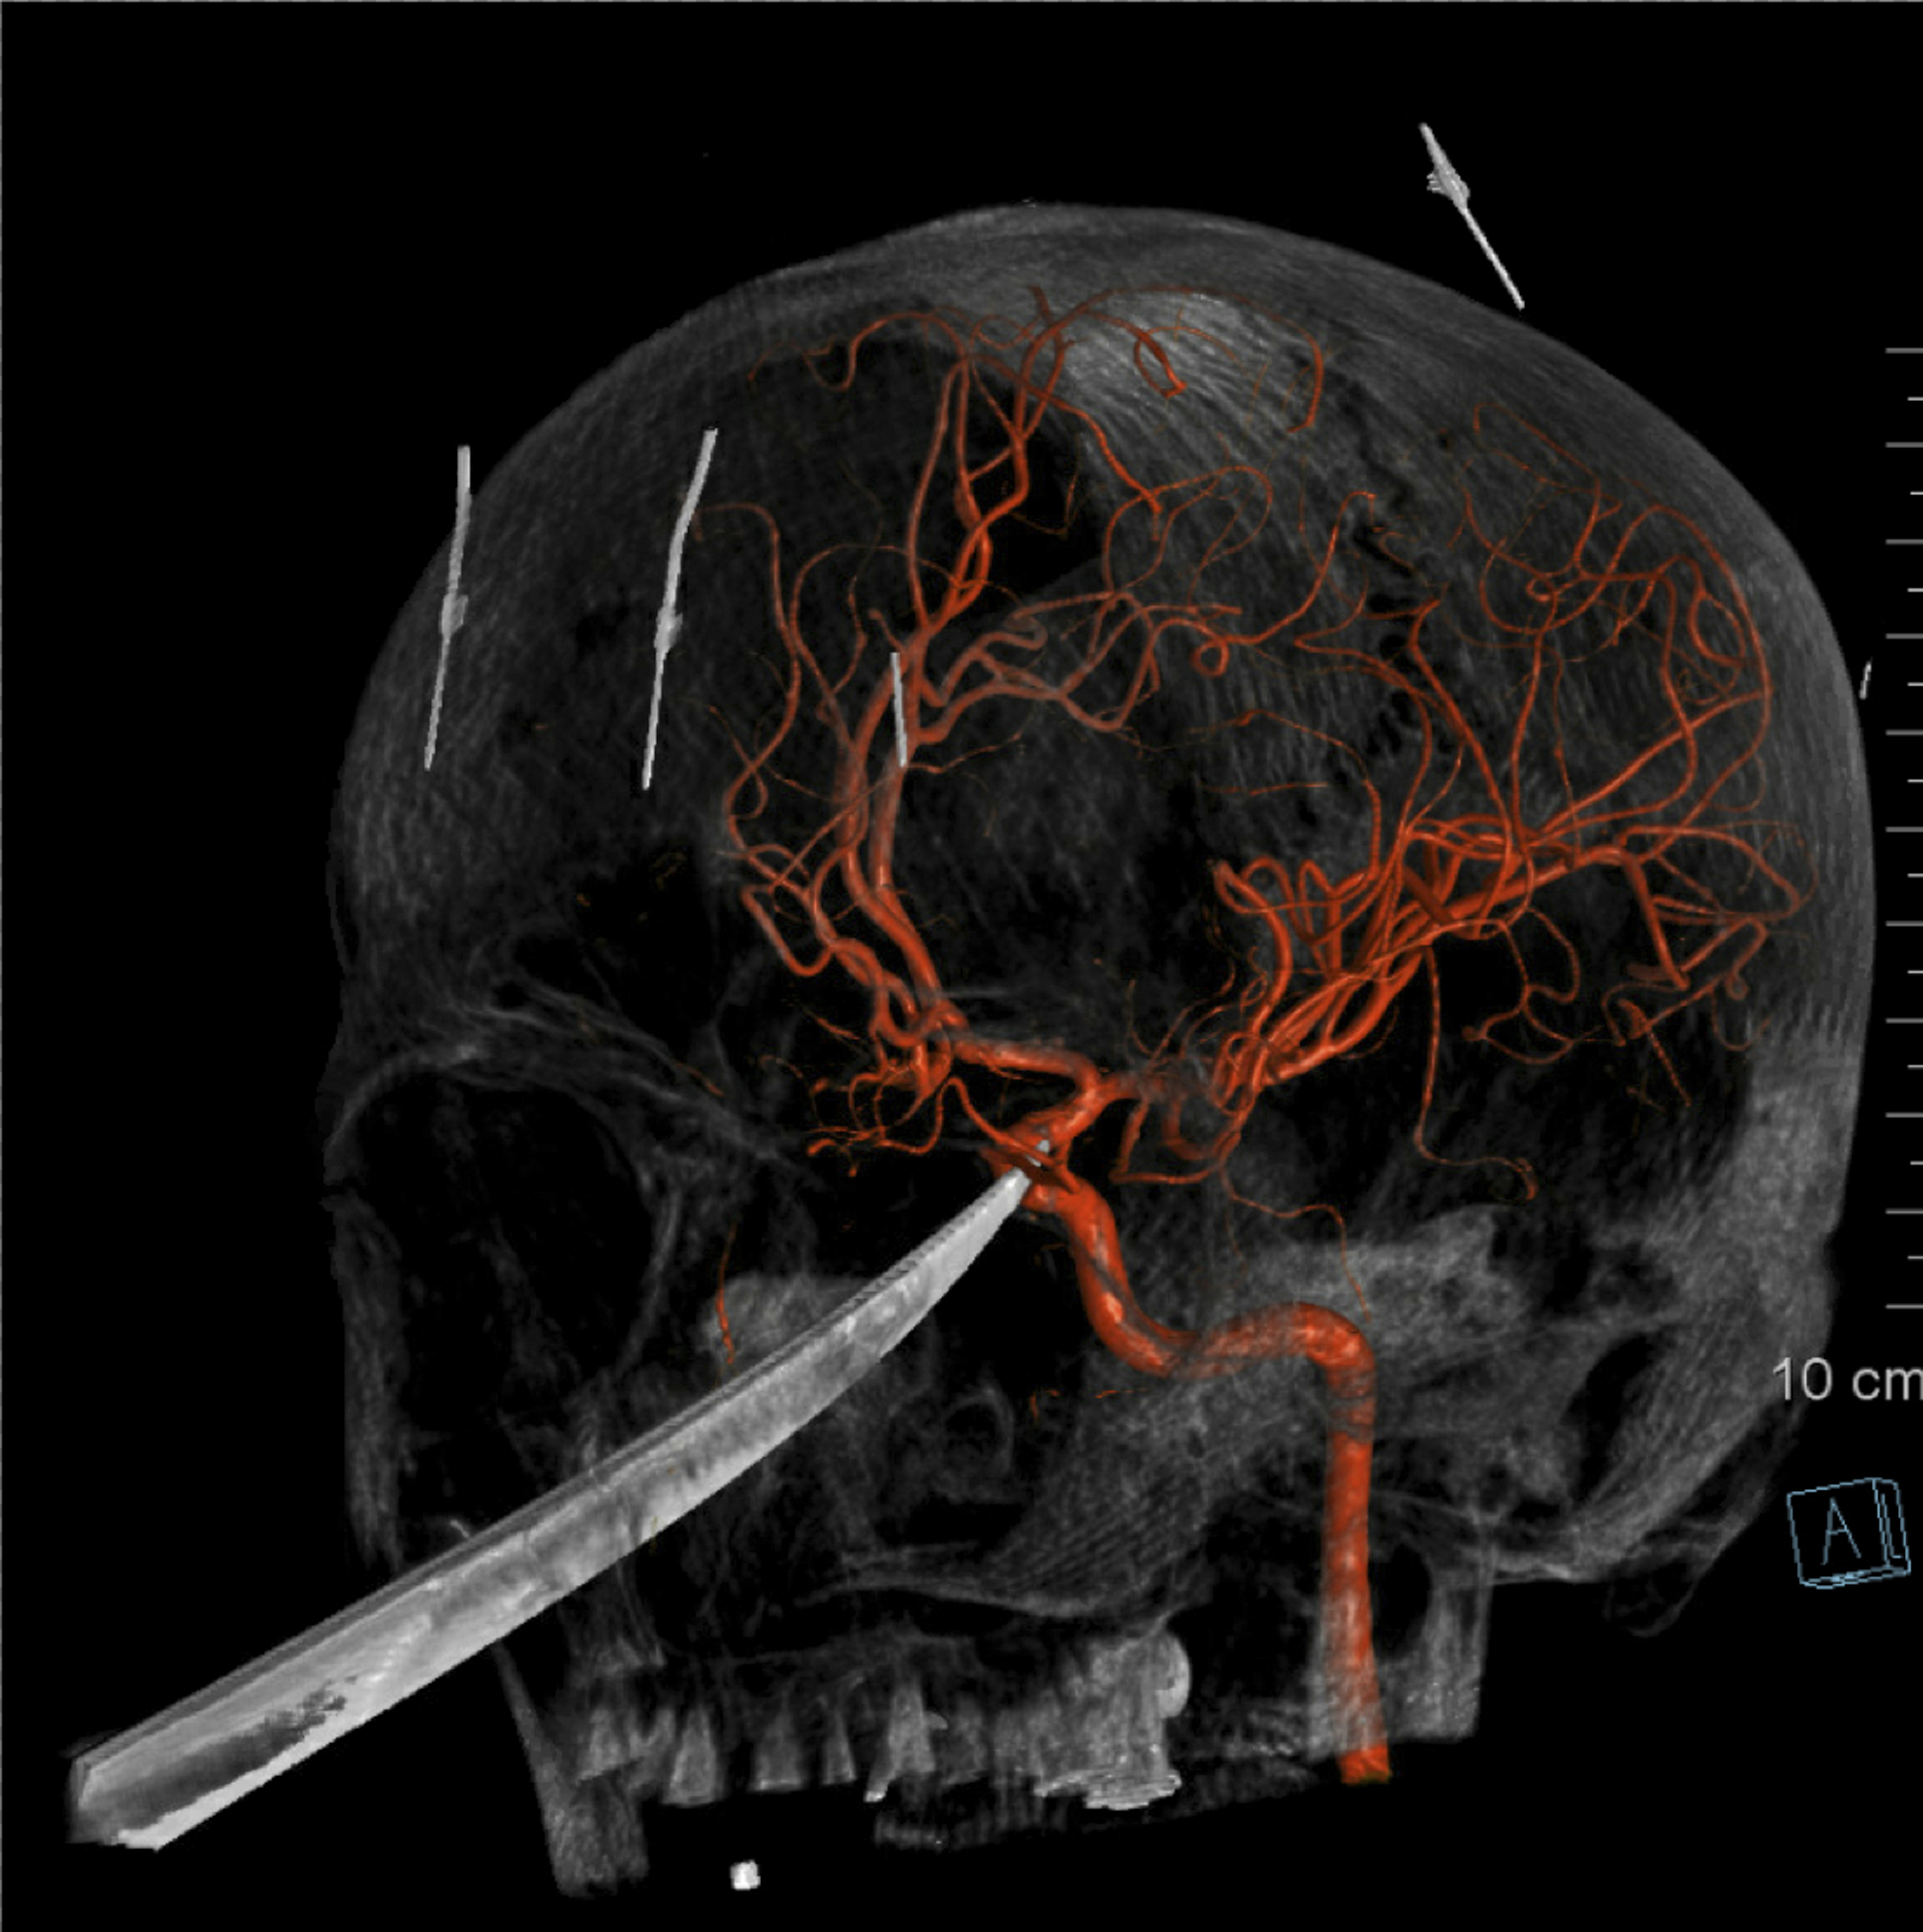 3D computer graphic model made from X-Ray imagery by The University of Kansas Health System shows how a tip of the knife stopped right on and was pressed against the carotid artery